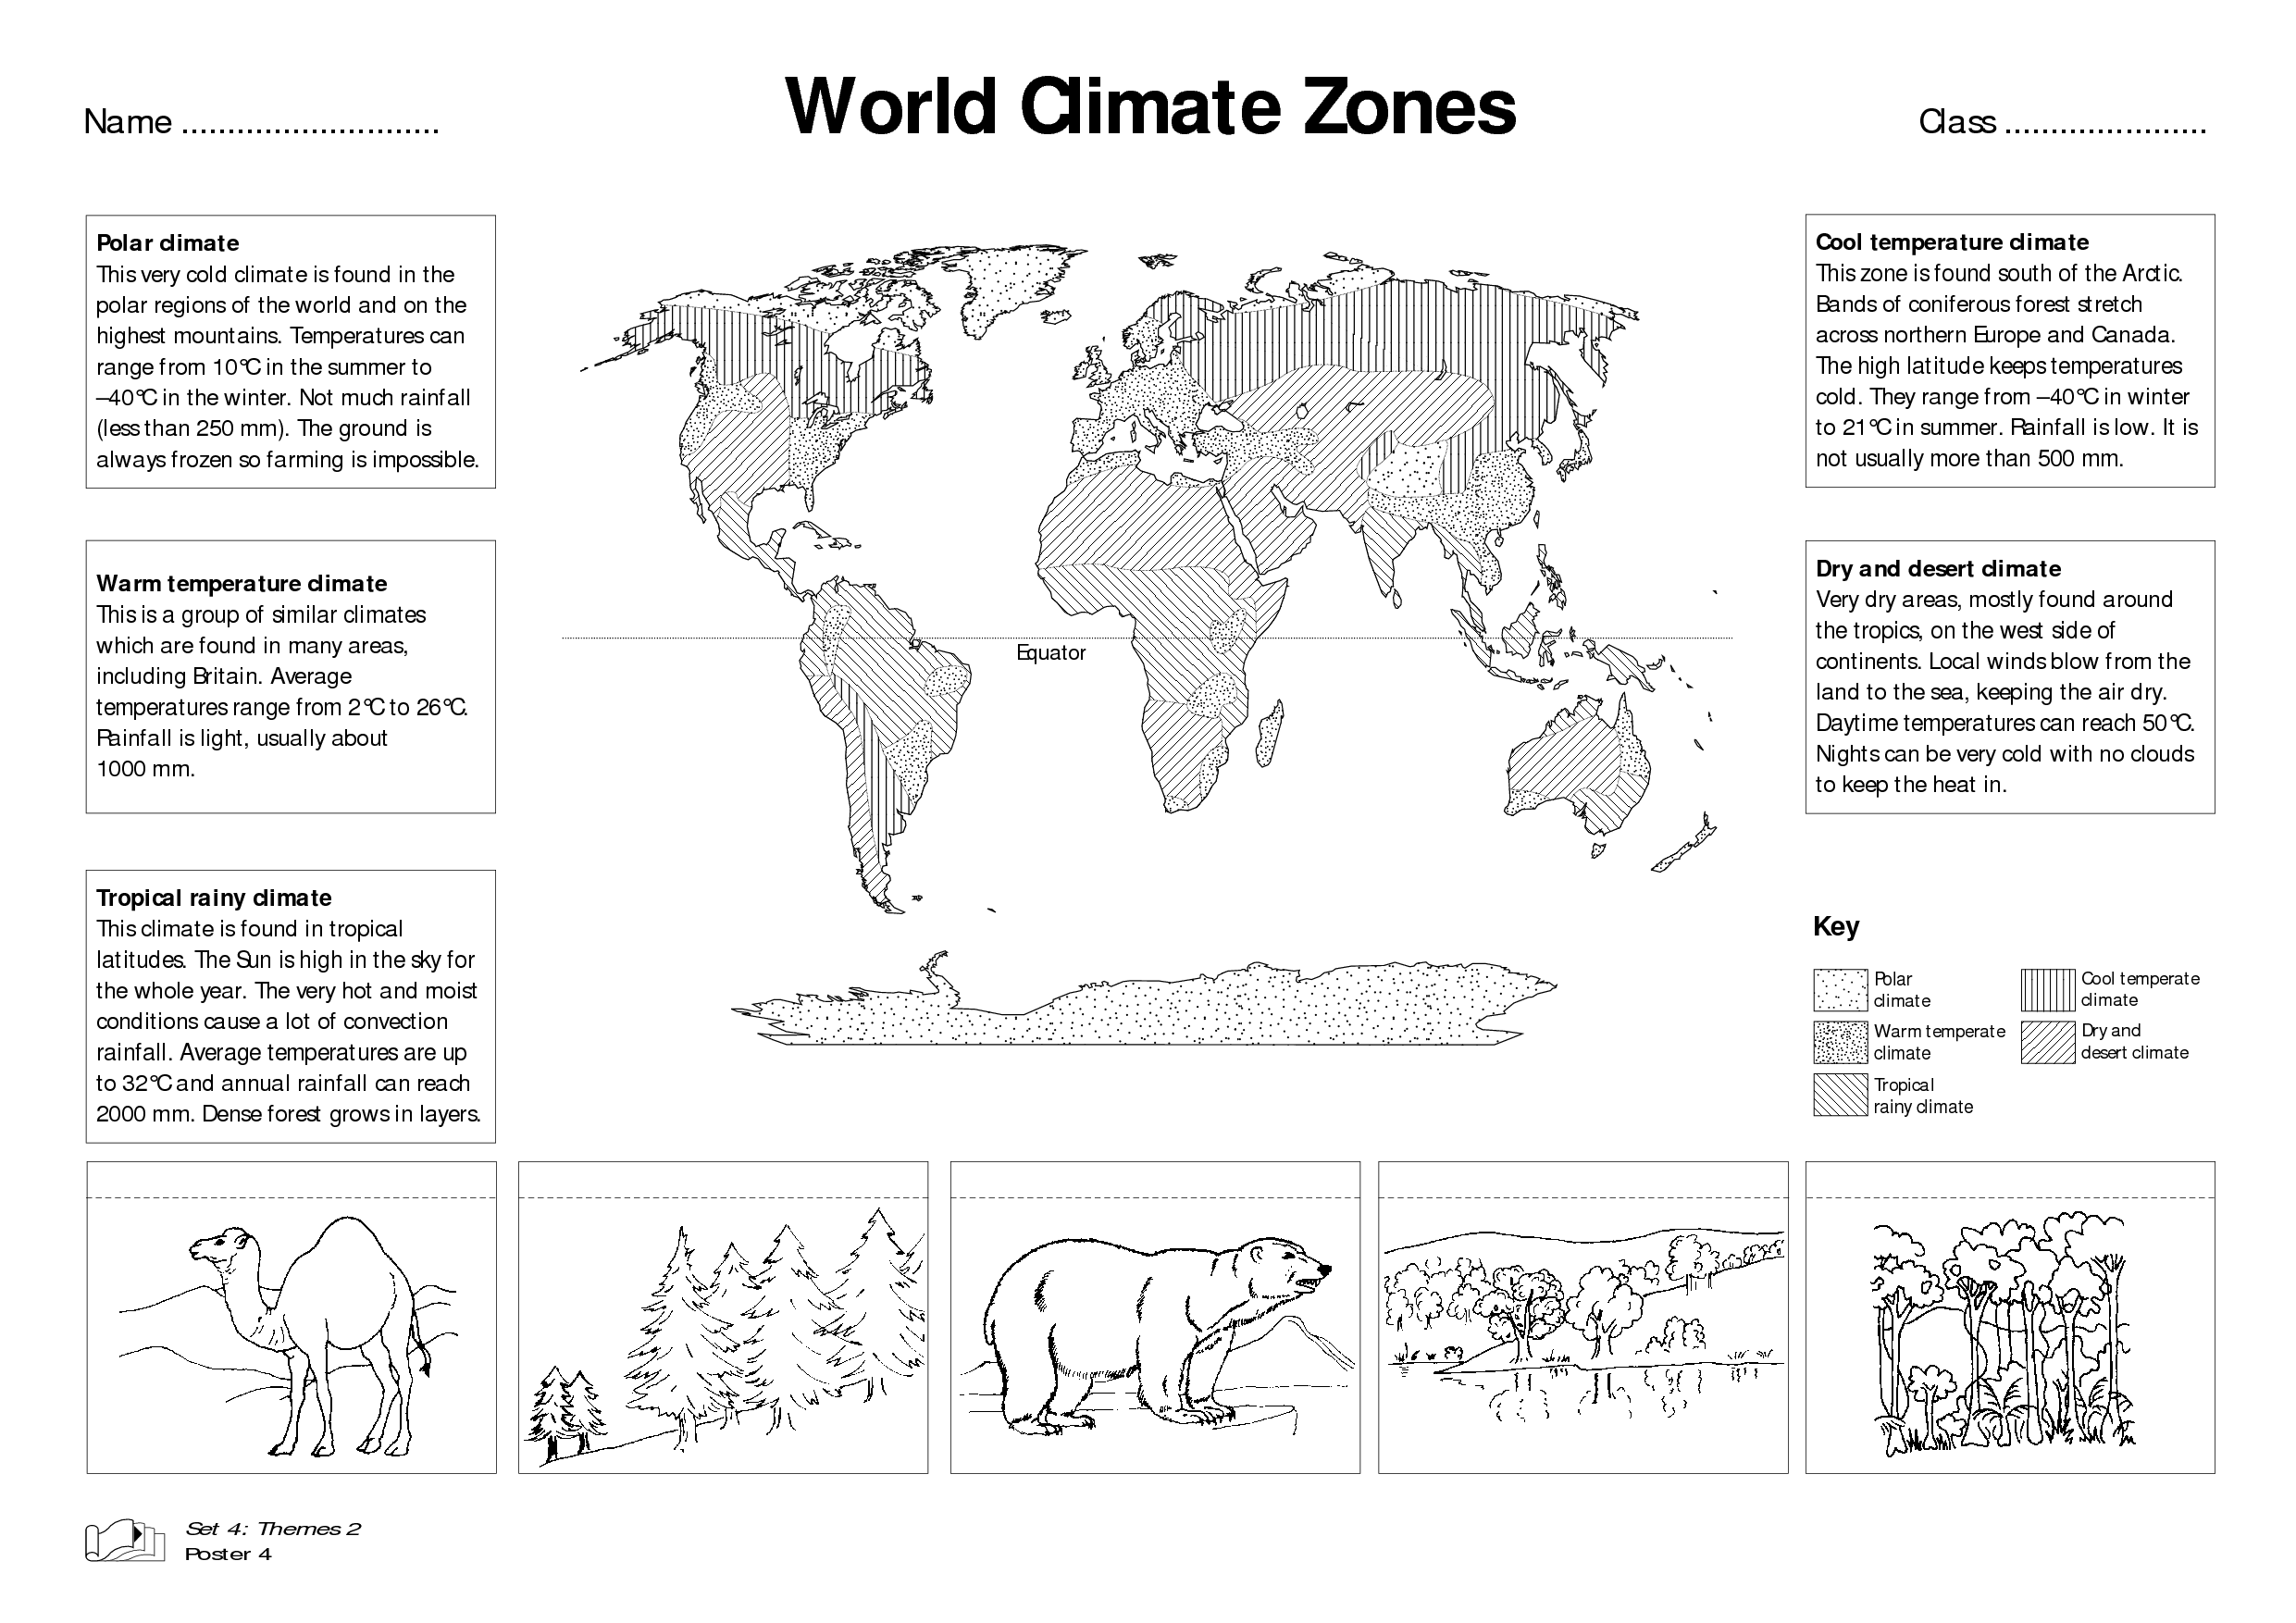 medium resolution of world climate zones for kids worksheets - Google Search   Weather worksheets